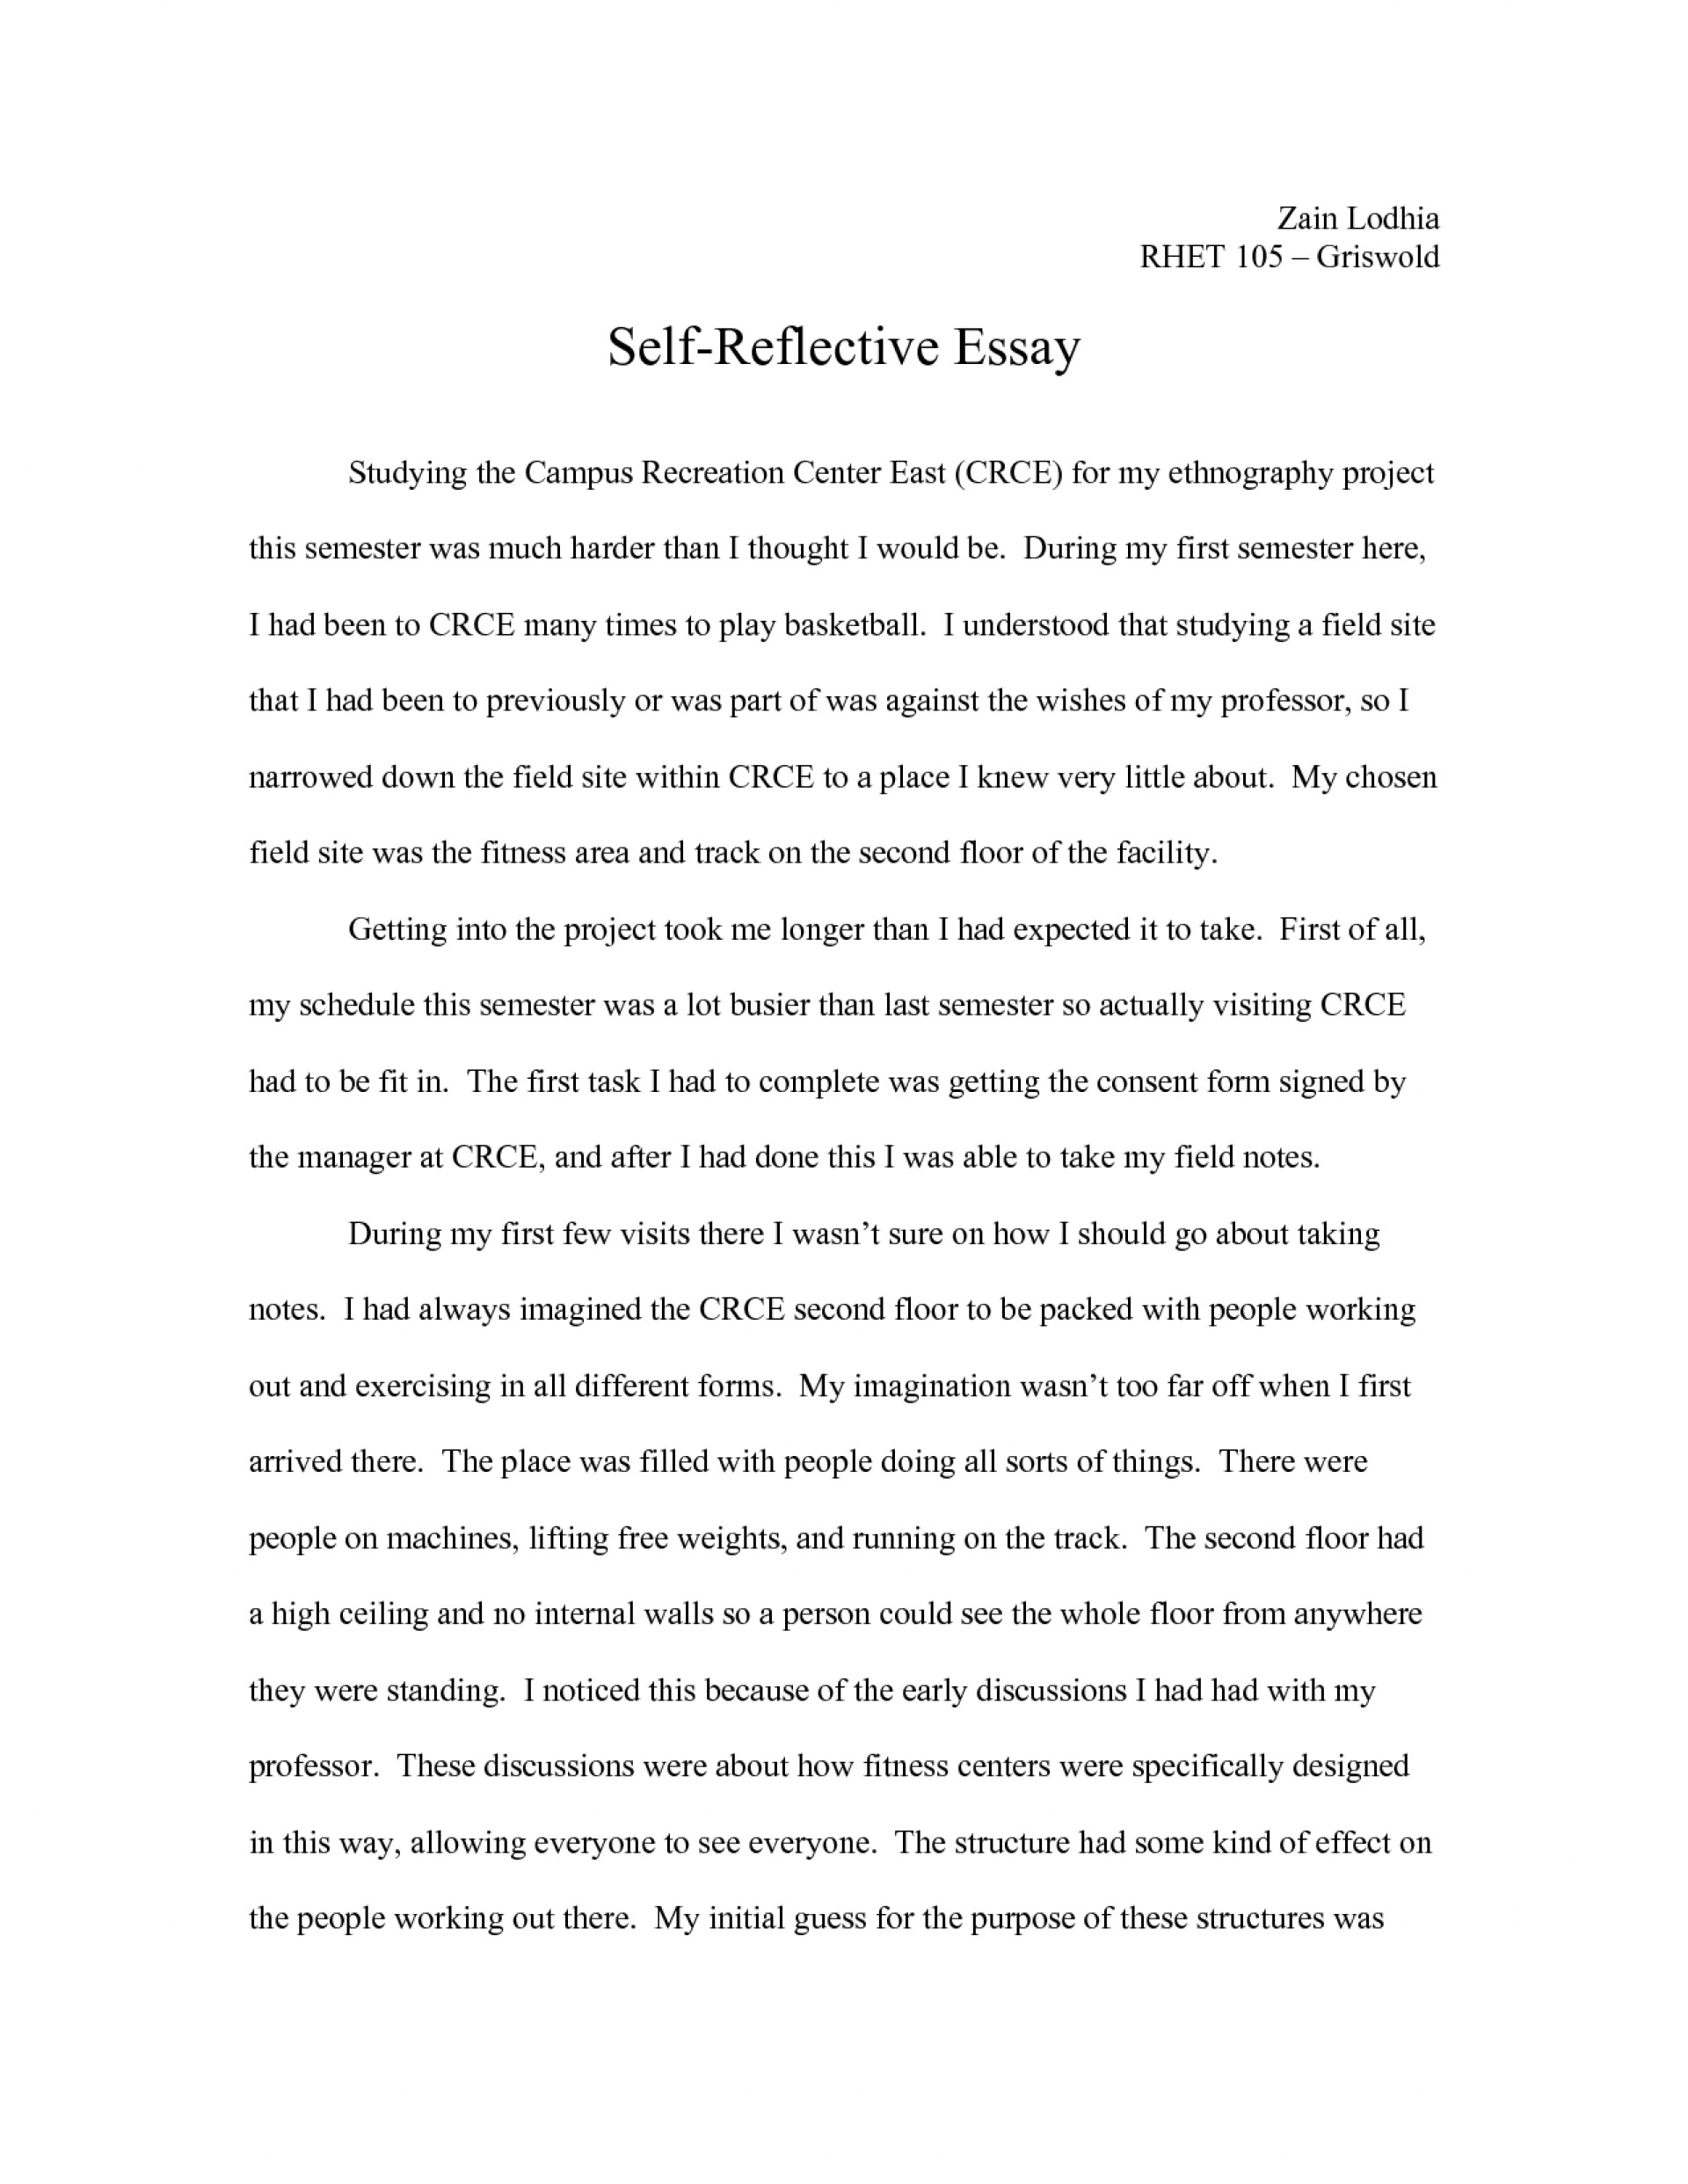 003 Qal0pwnf46 Reflective Essays Beautiful Essay Examples Sample Pdf About Writing English 101 1920